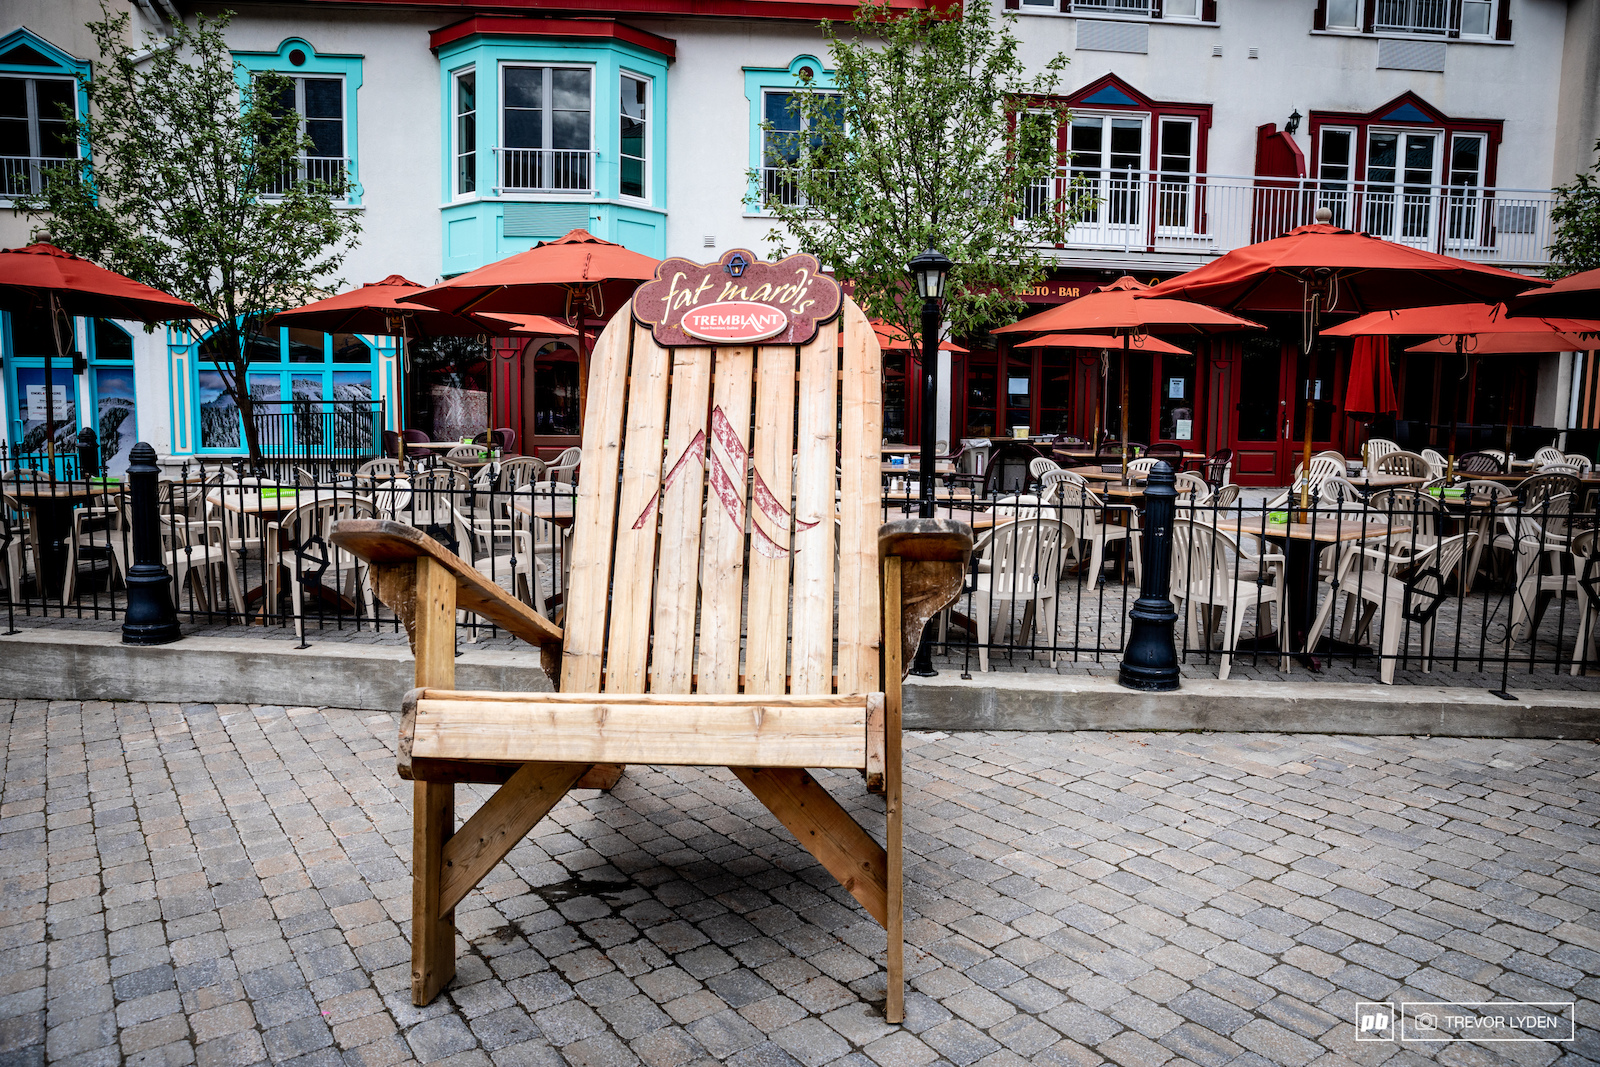 Big chair in a little town.